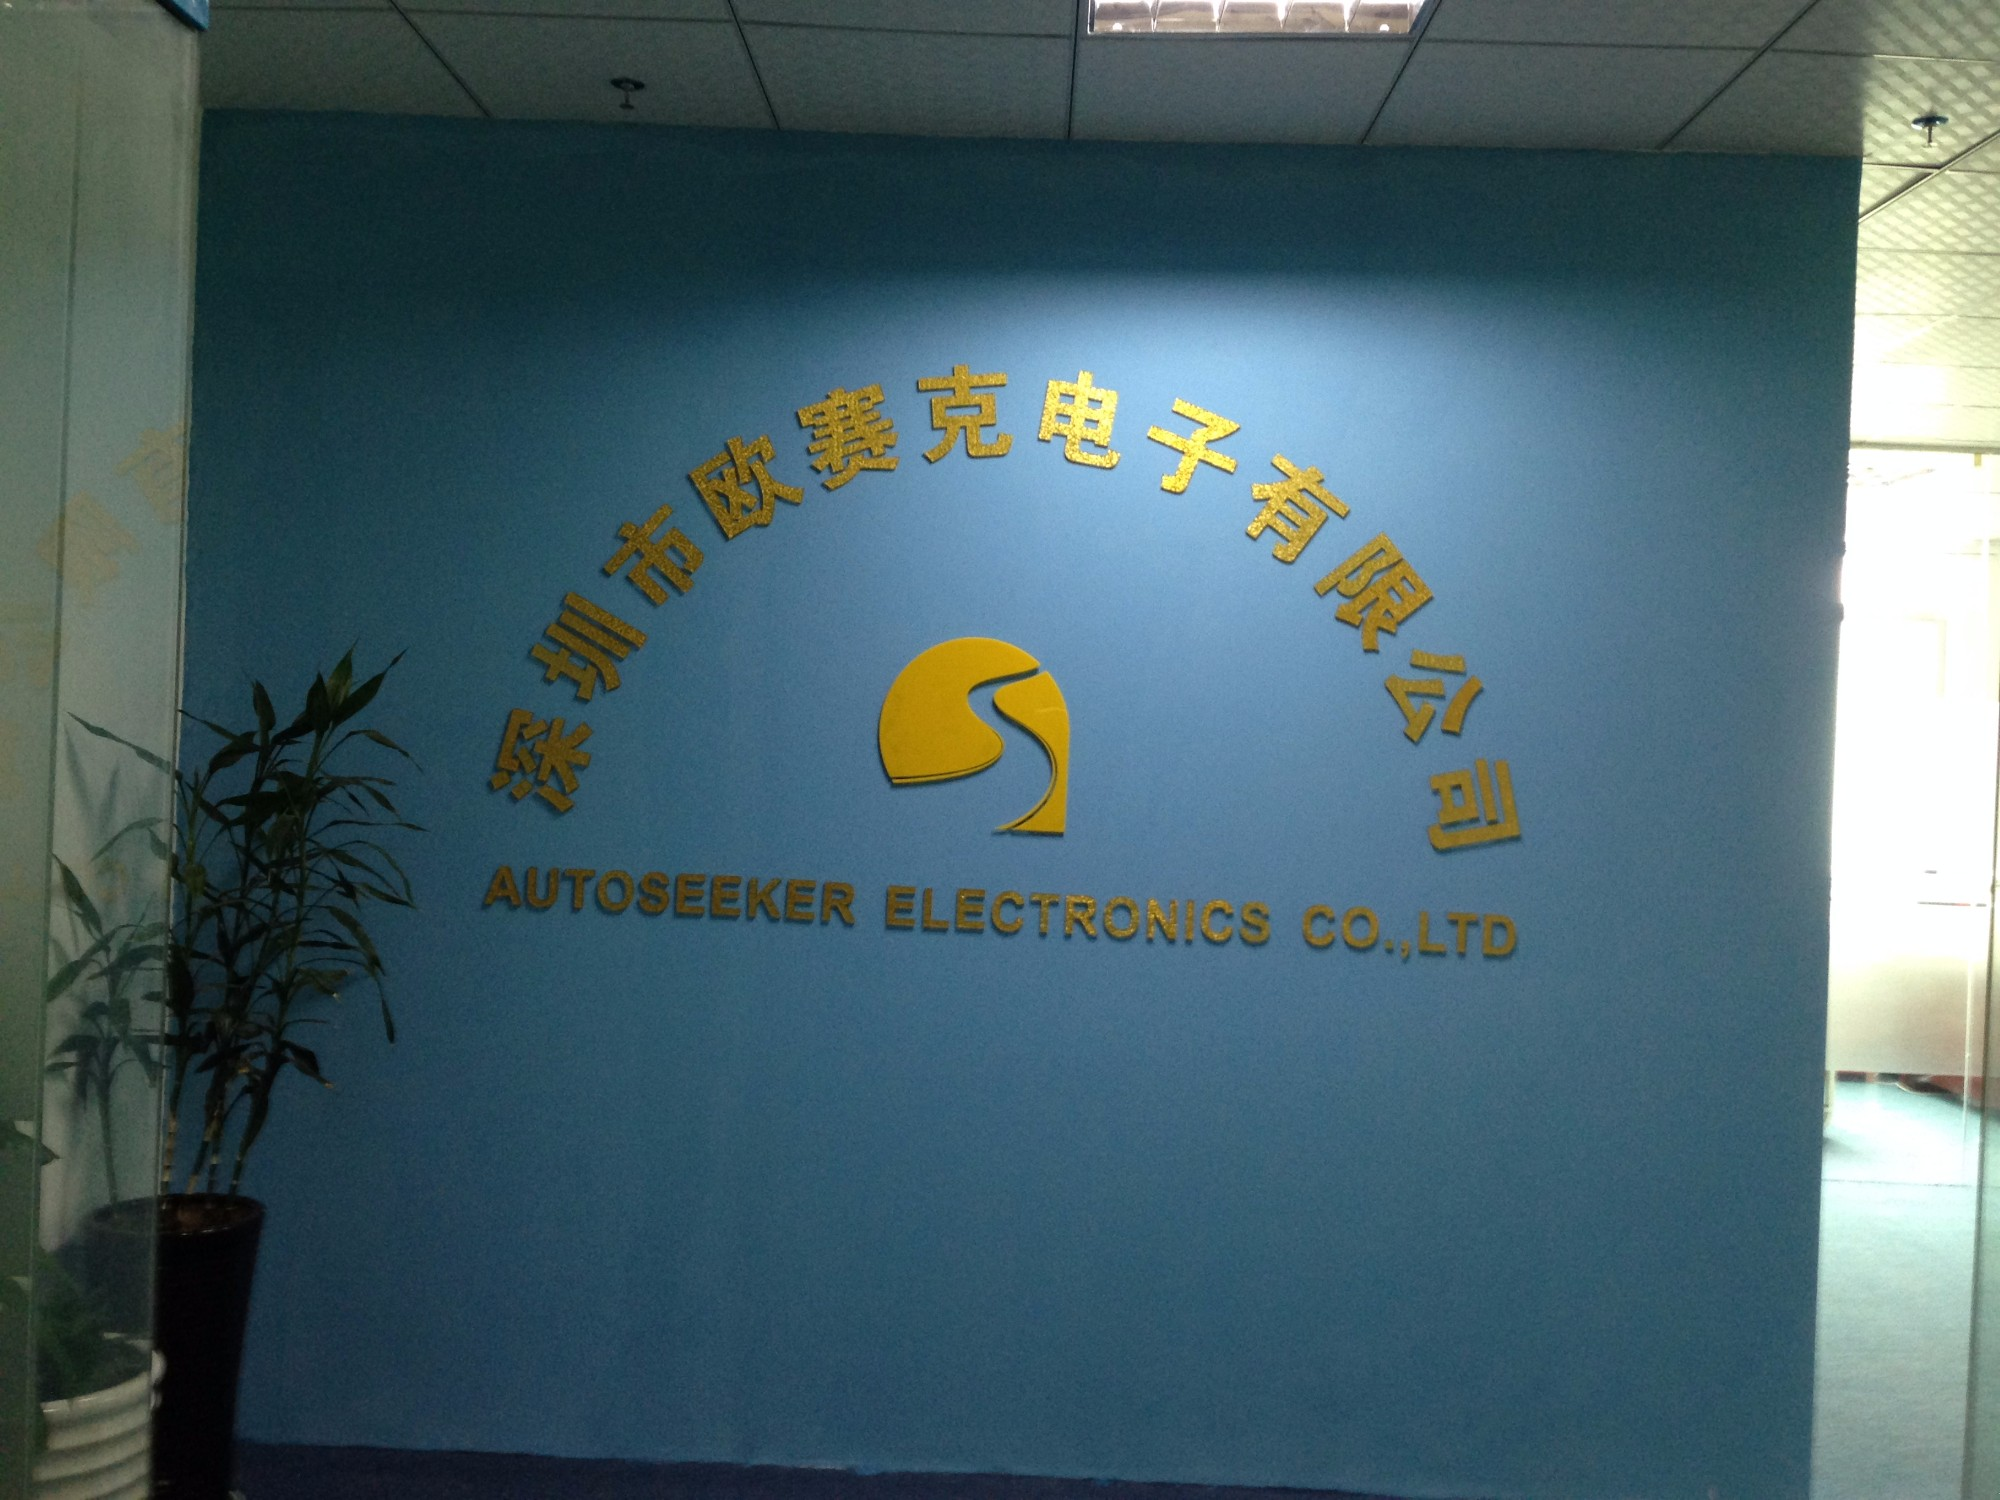 AUTOSEEKER ELECTRONICSO CO., LTD